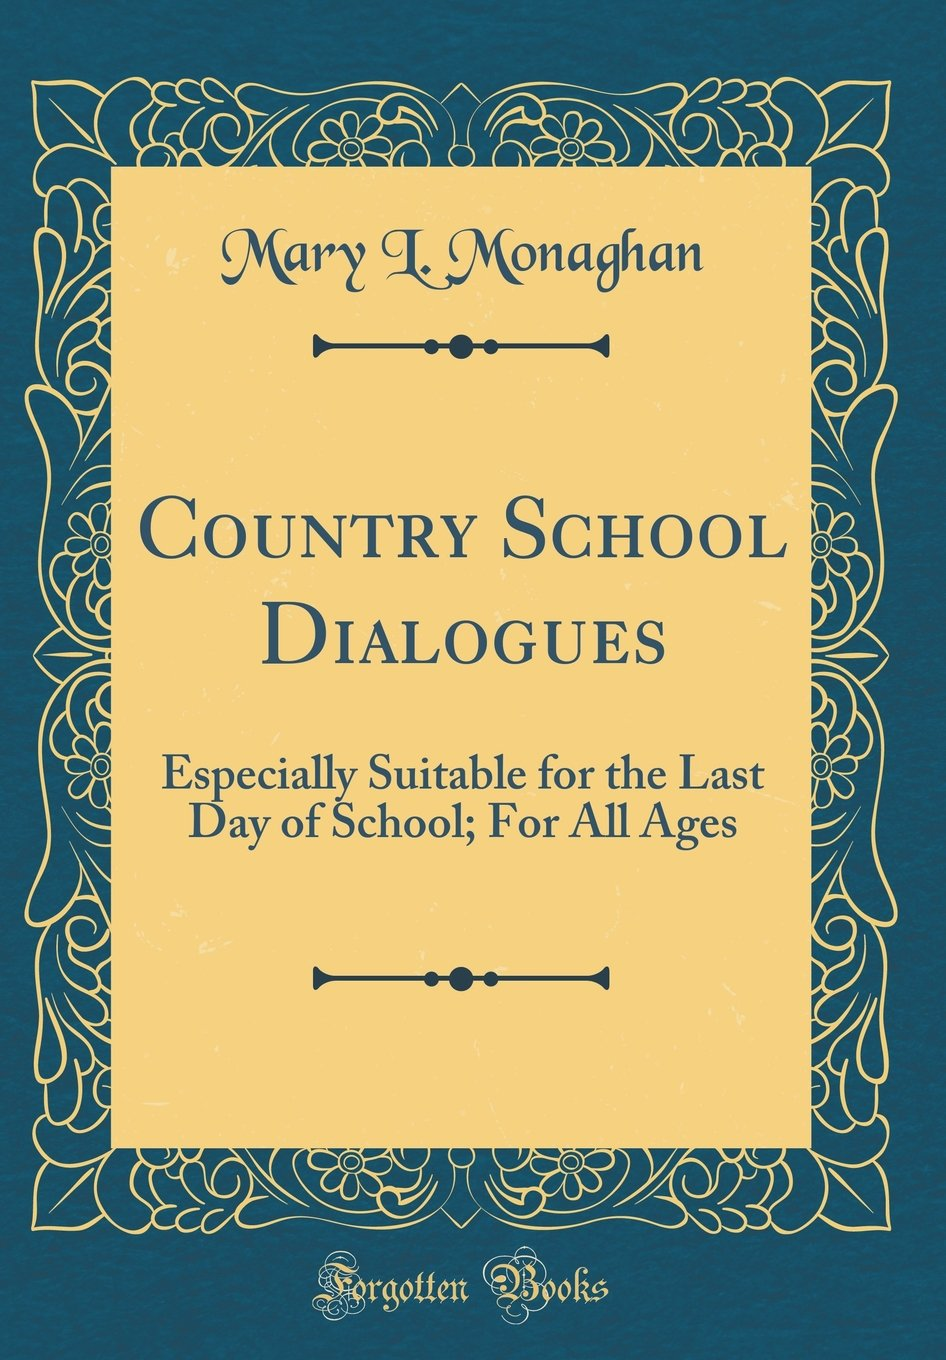 Country School Dialogues: Especially Suitable for the Last Day of School; For All Ages (Classic Reprint) ePub fb2 ebook